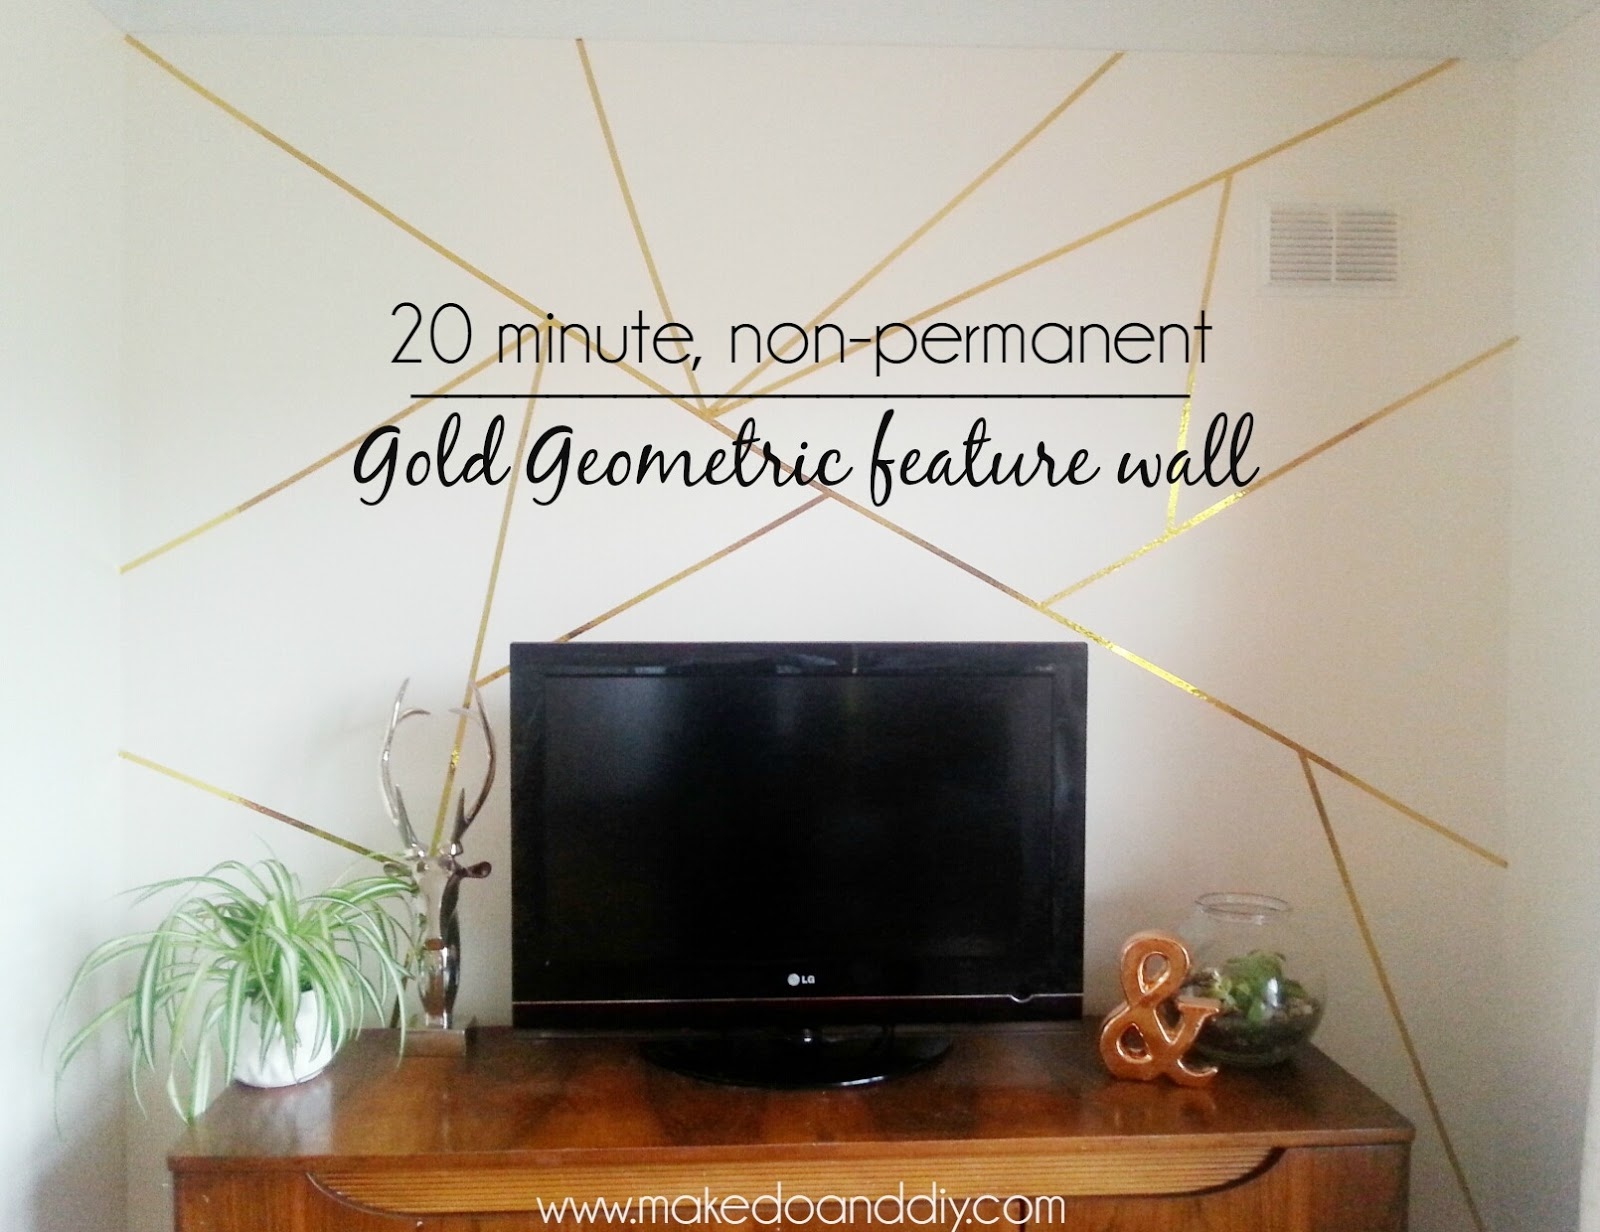 how to create a gold geometric feature wall in 20 minutes...and it's  removable!